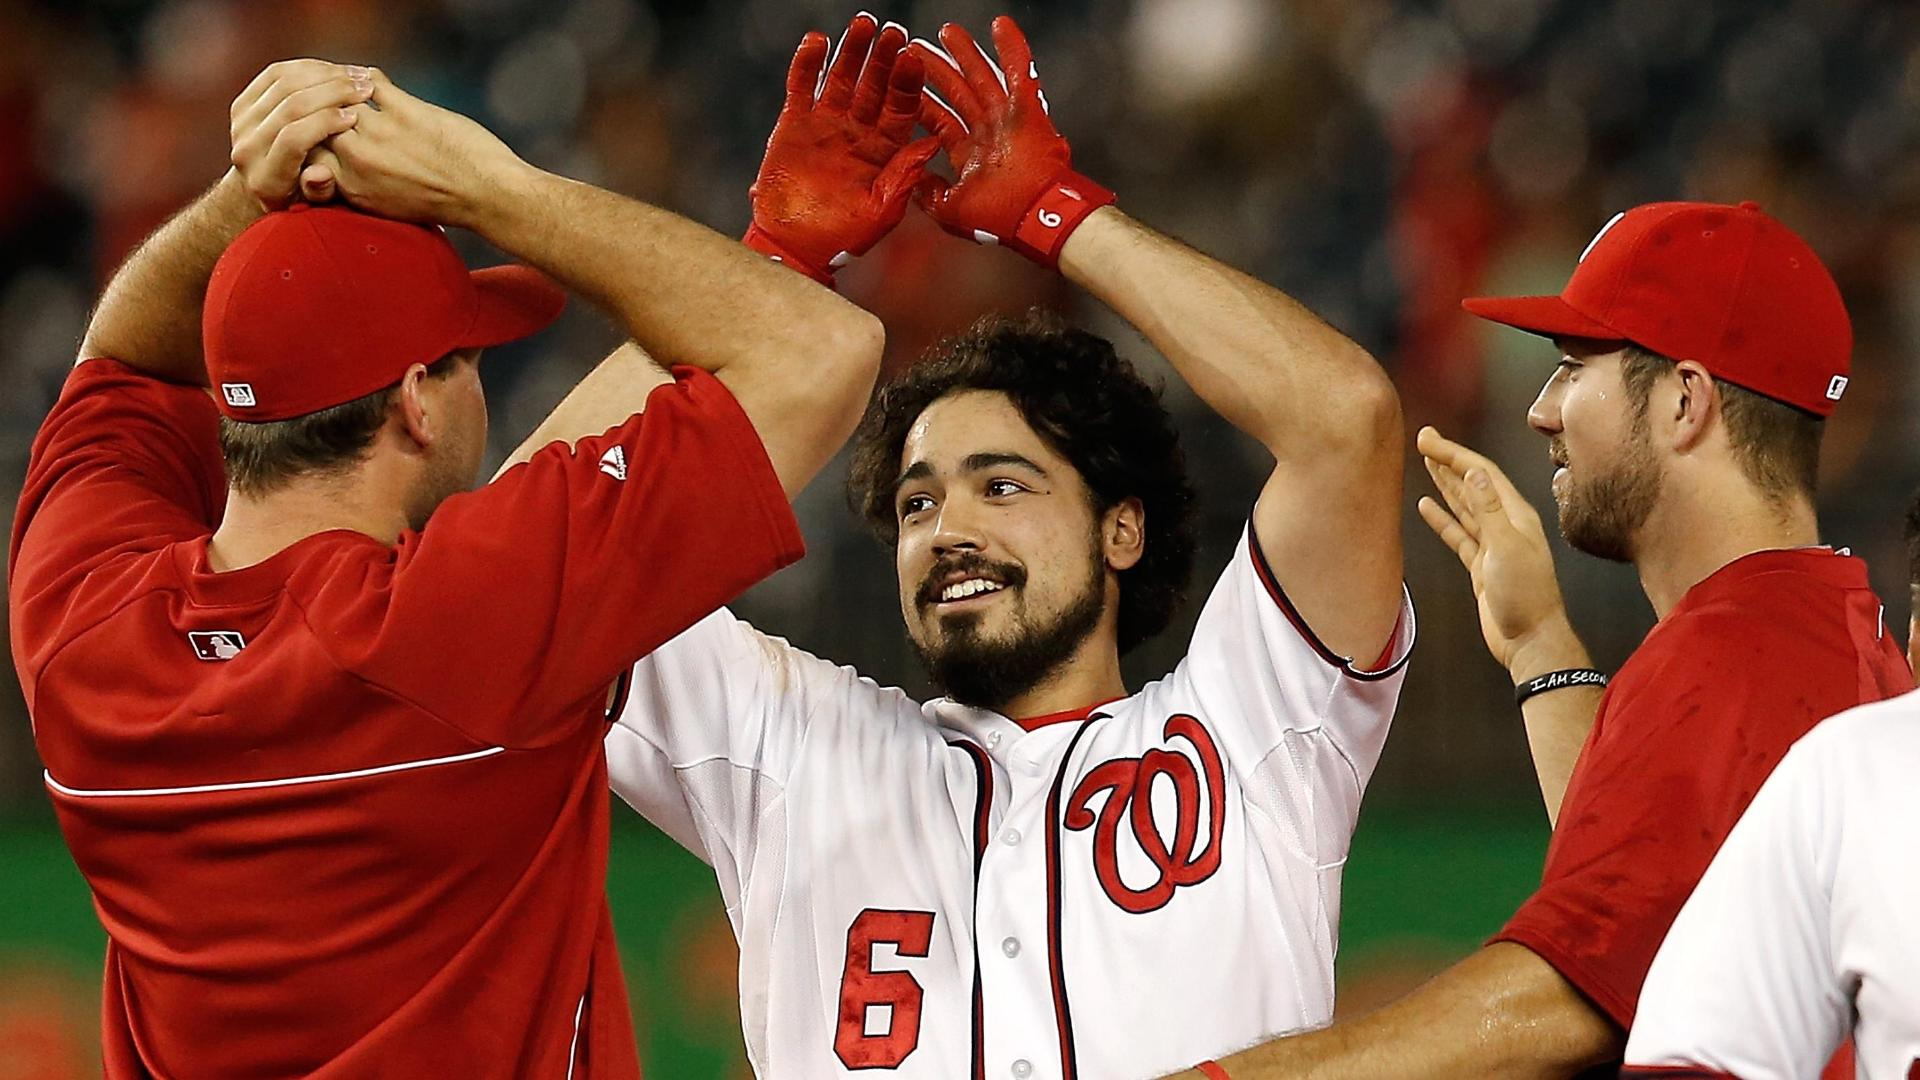 Video - Nationals Walk Off Against Diamondbacks